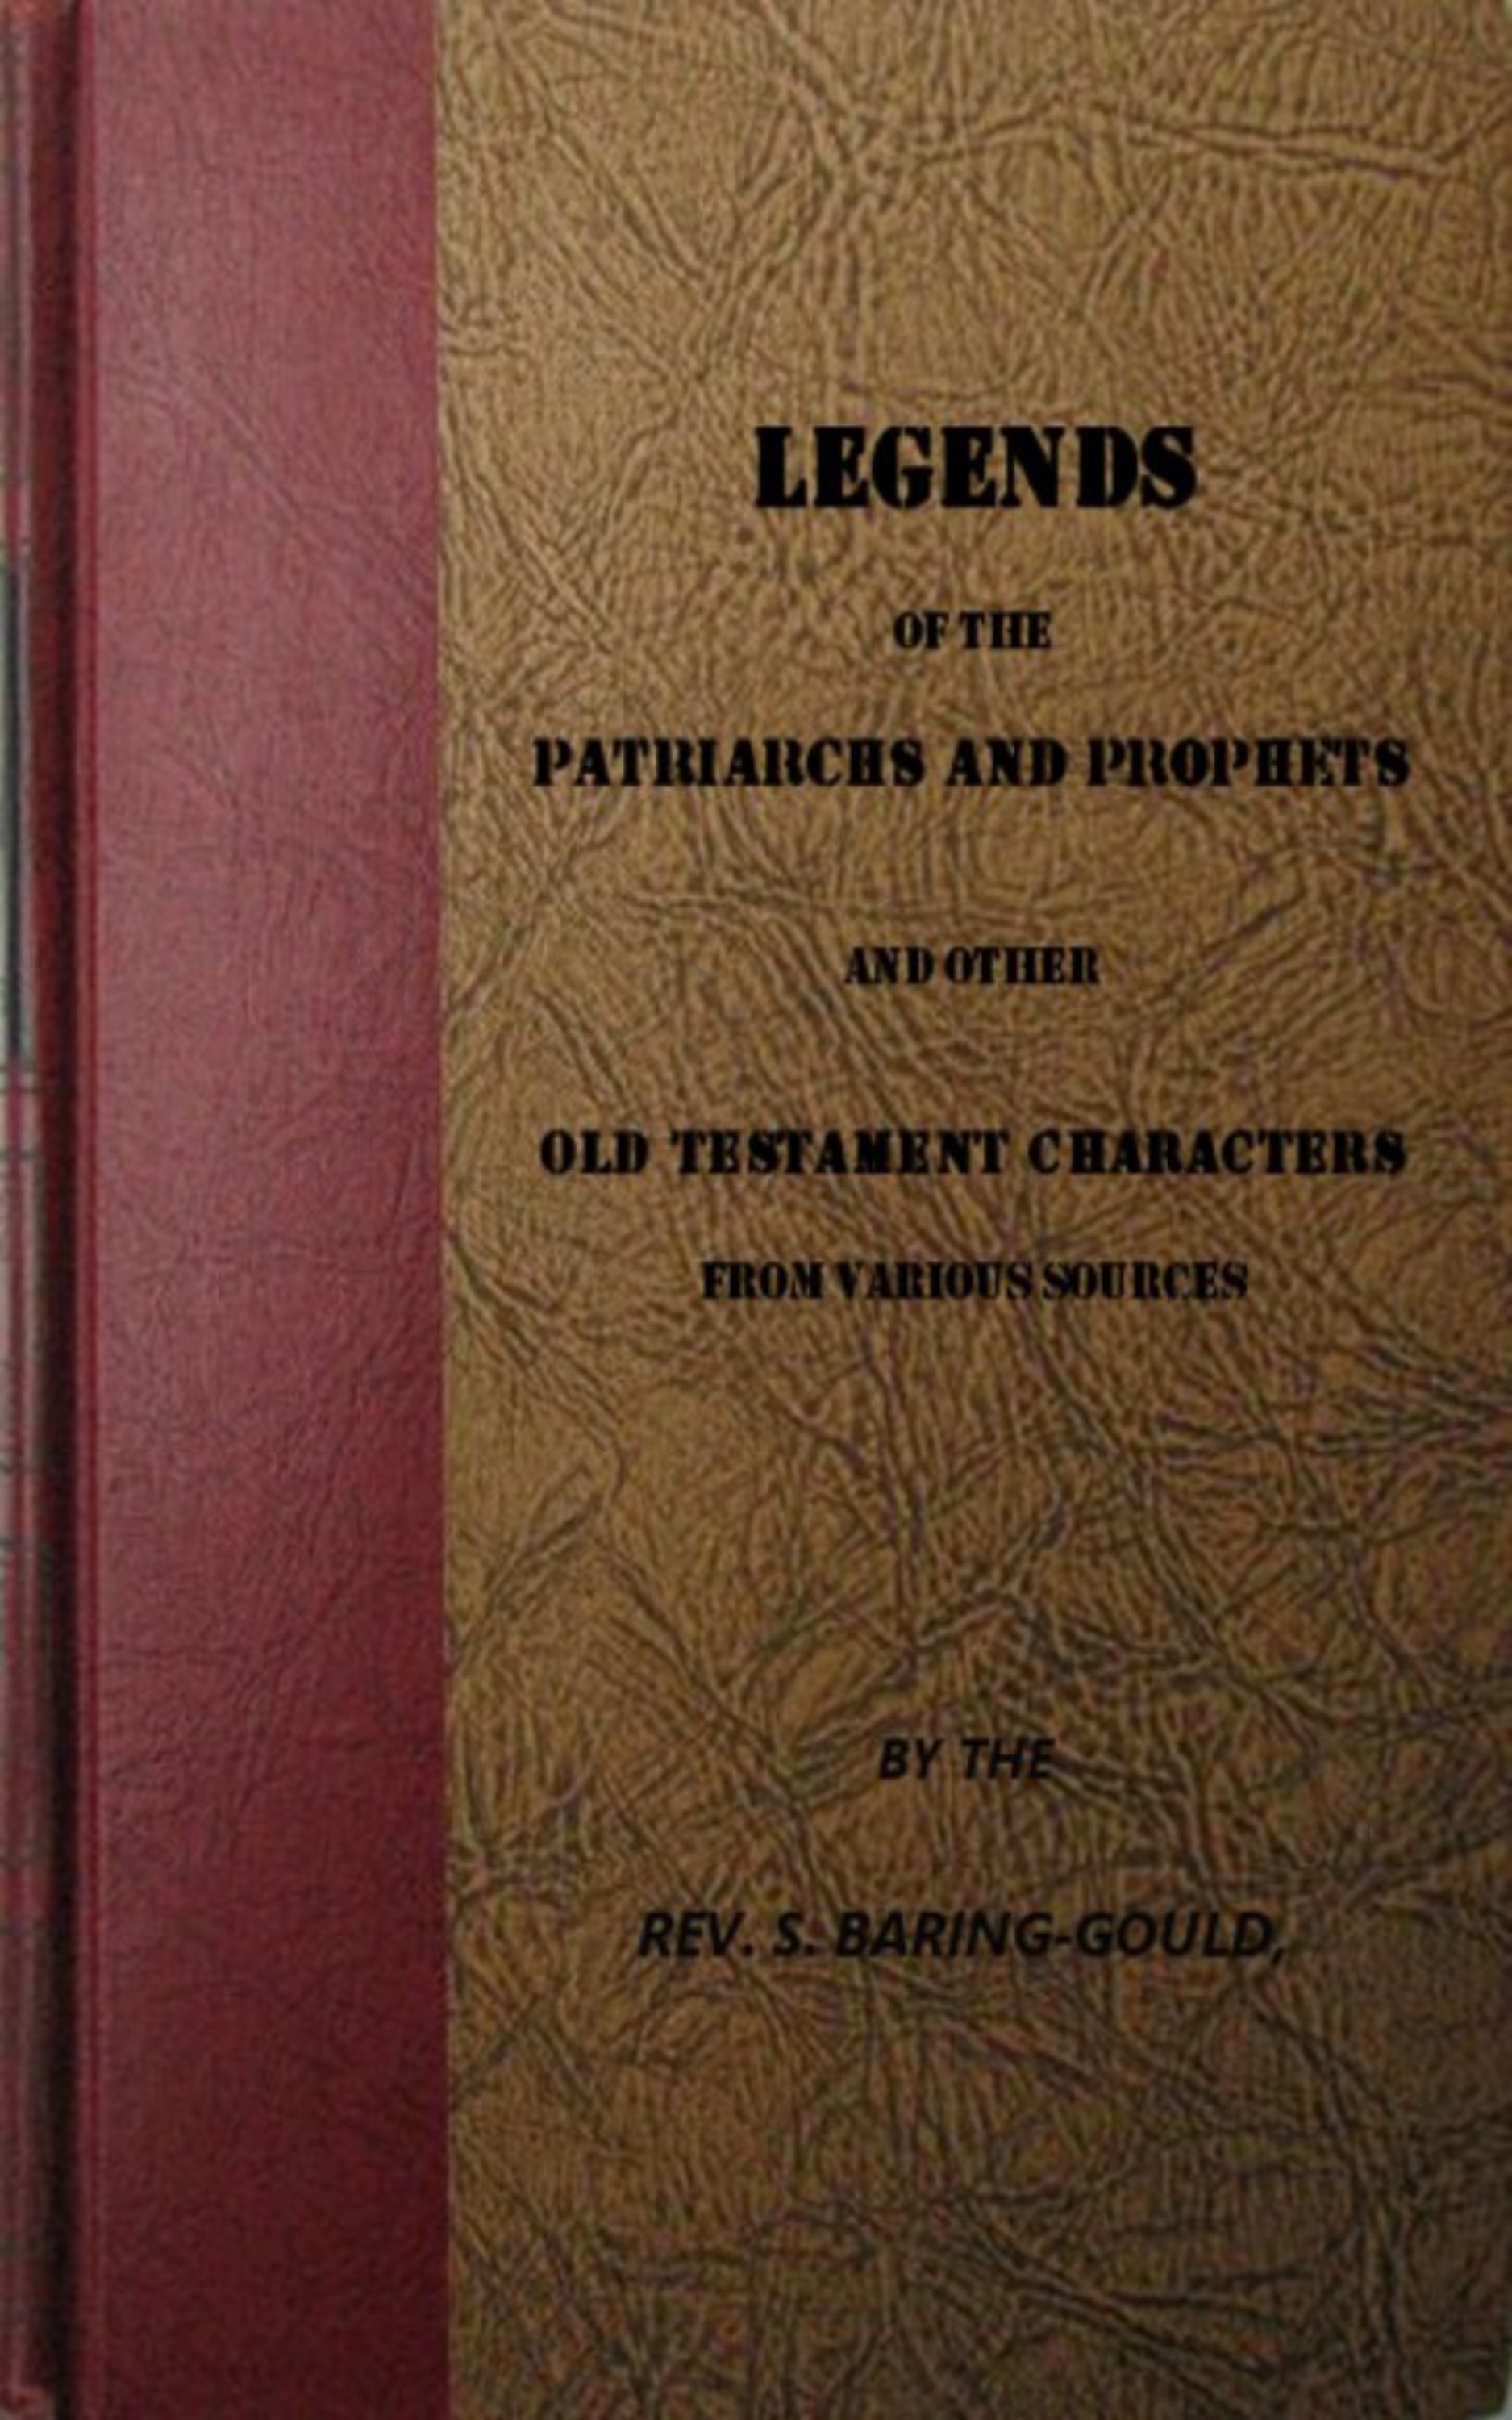 S. Baring-Gould Legends of the Patriarchs and Prophets and otheatacters from Various Sources